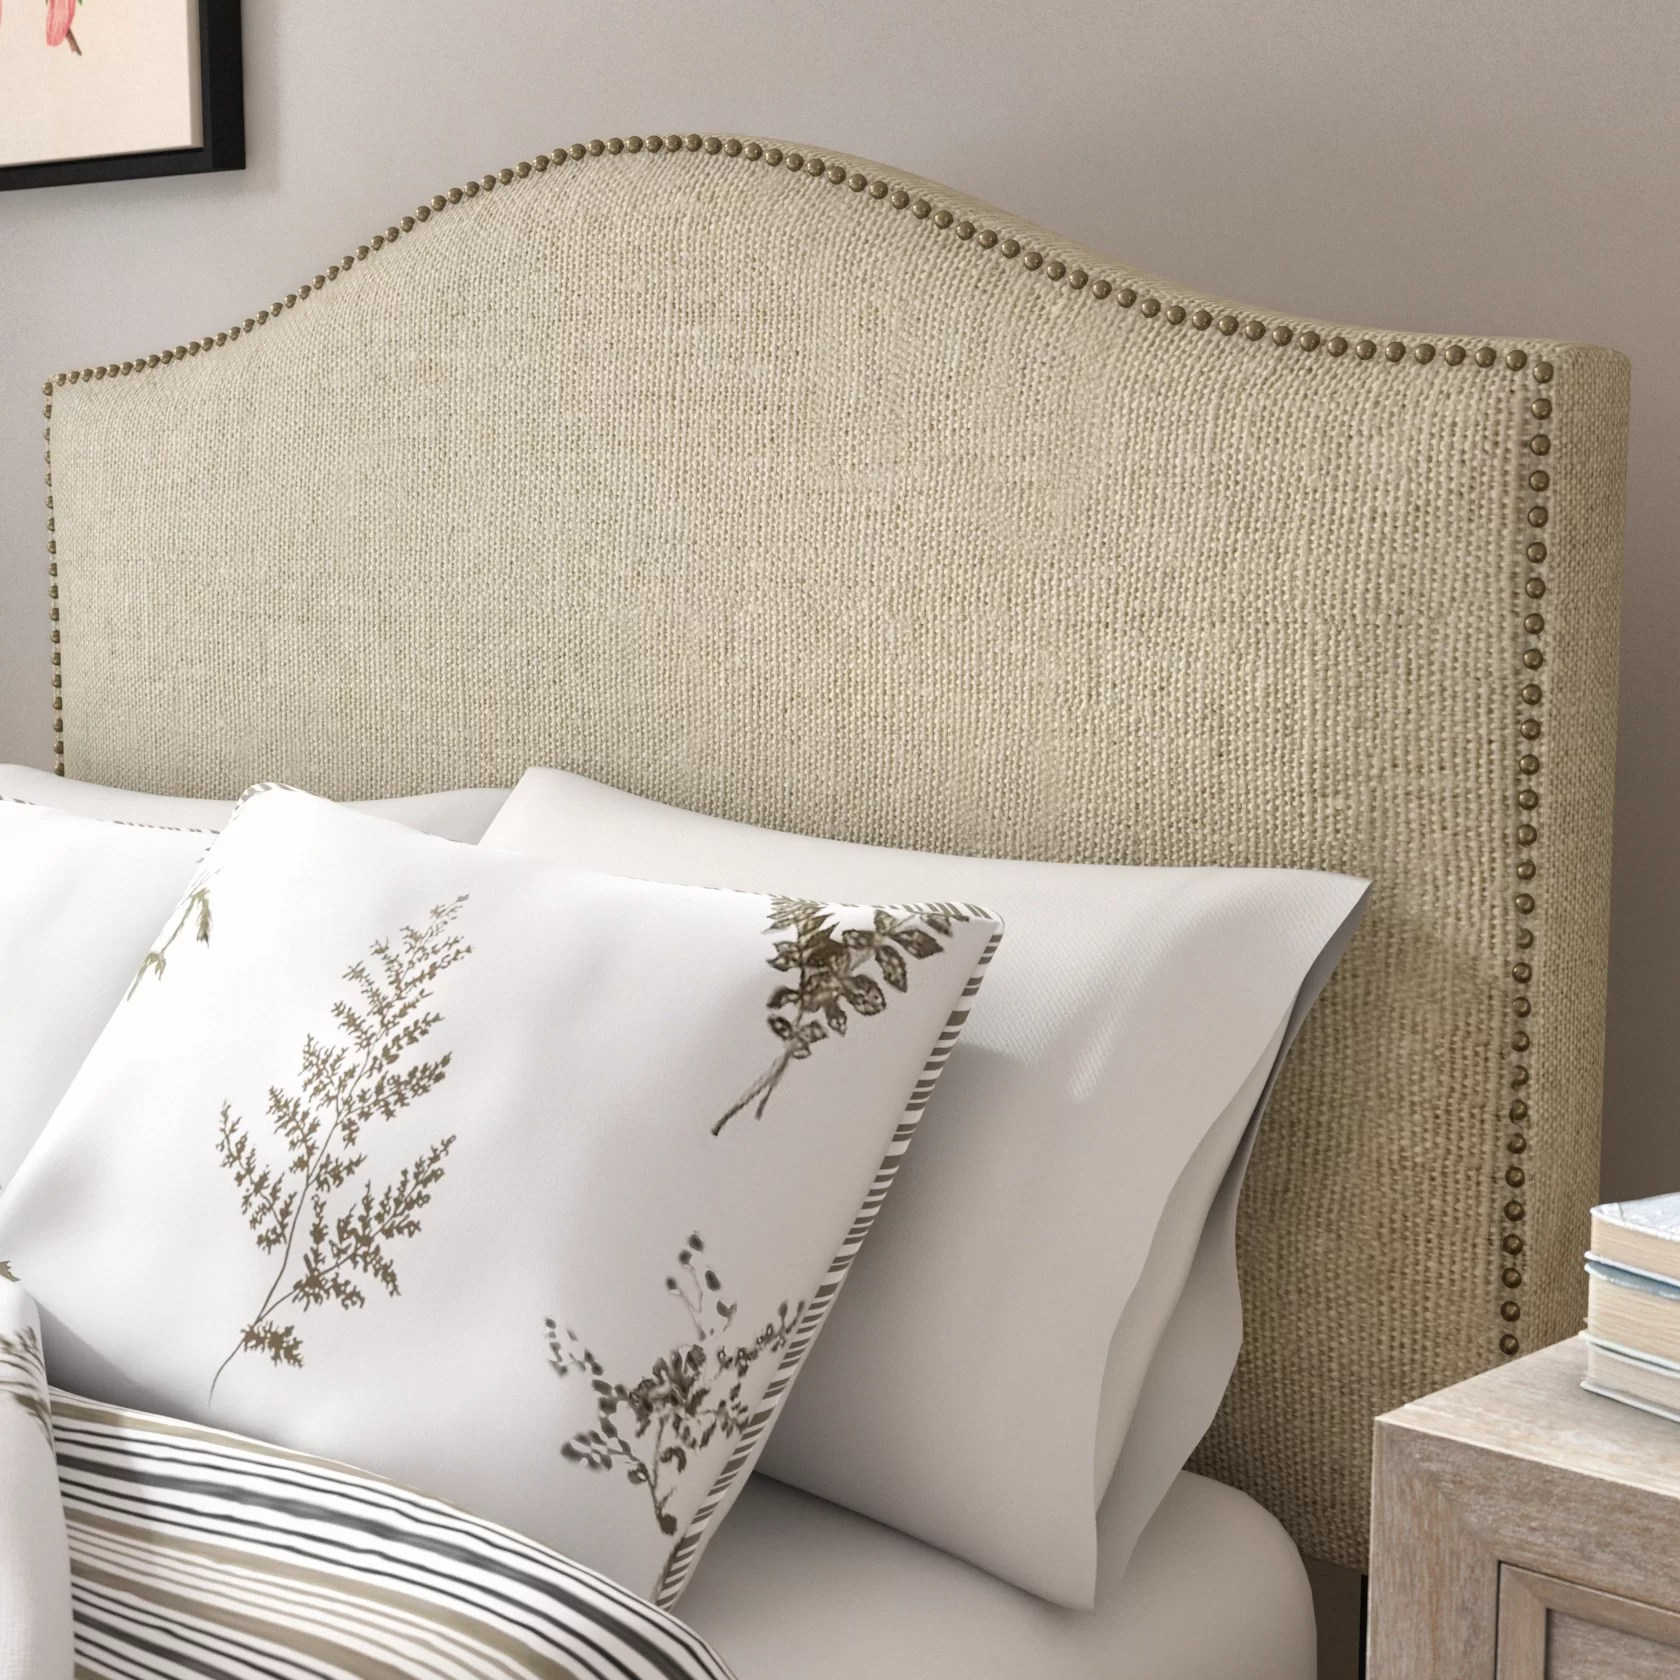 Bed Headboard Pesmes Upholstered Panel Headboard